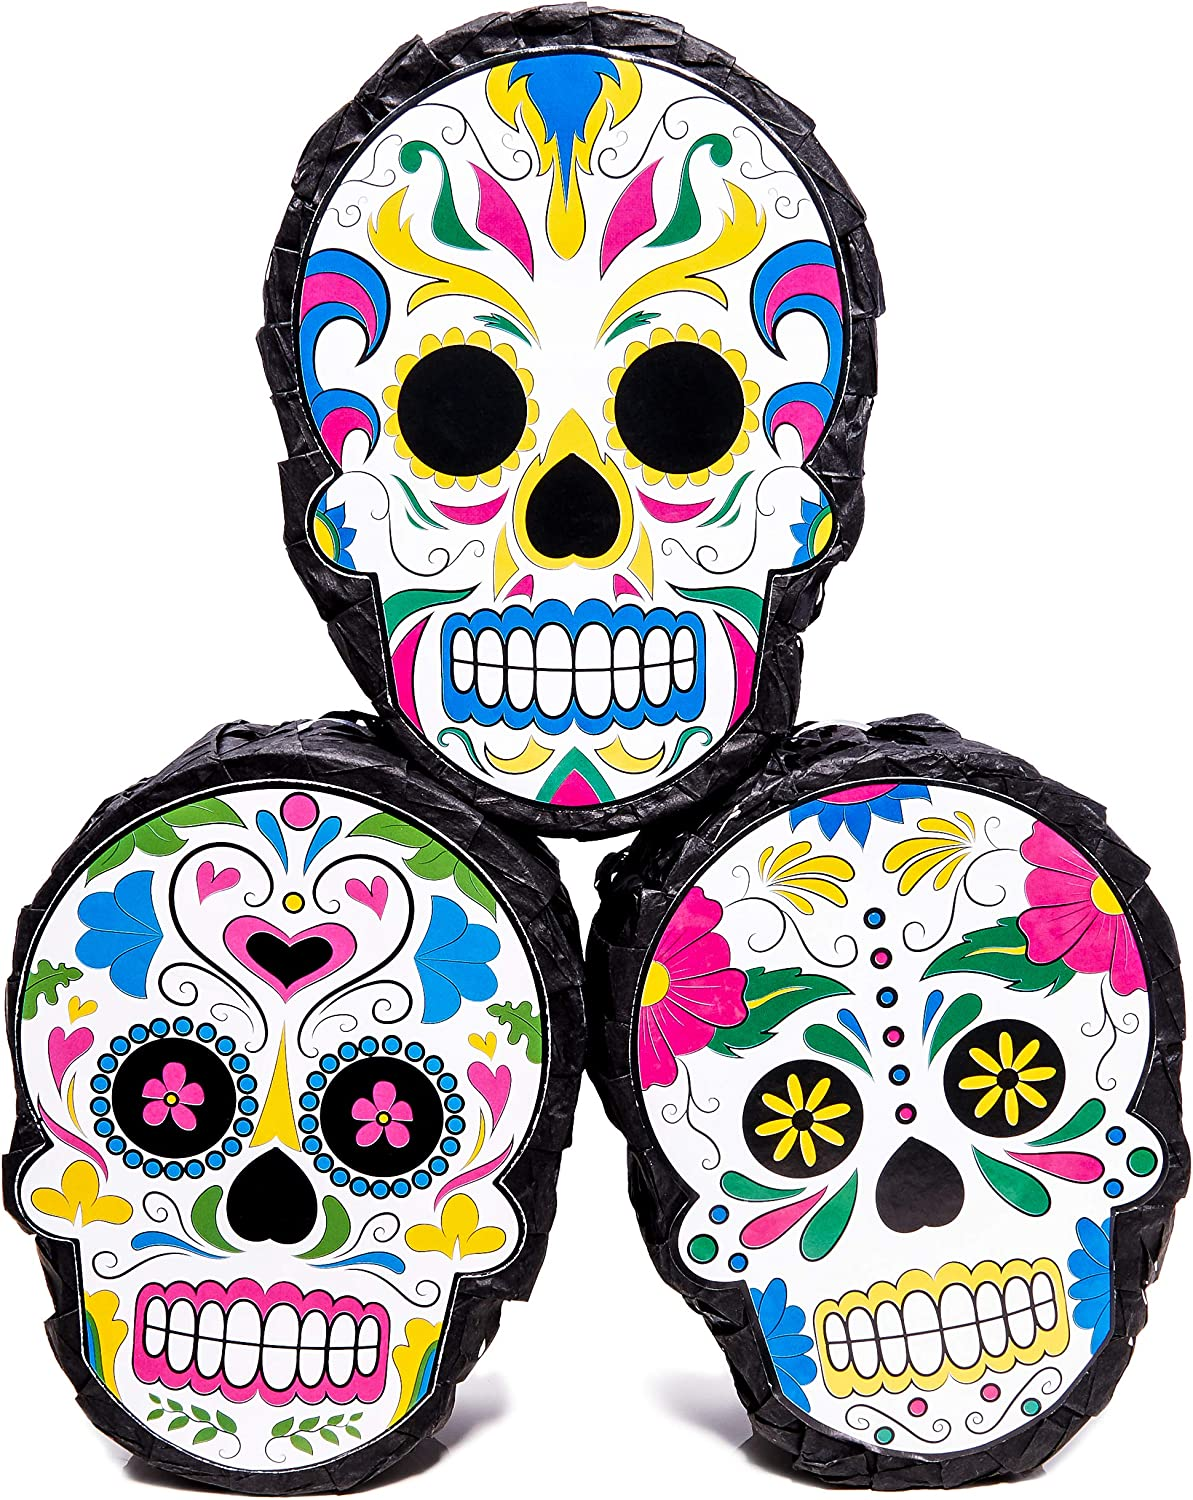 Fiesta Parties Mexican Party Supplies for Cinco De Mayo and Day of The Dead 4 x 7 x 2 Inches Blue Panda 3-Pack Sugar Skull Mini Pinatas